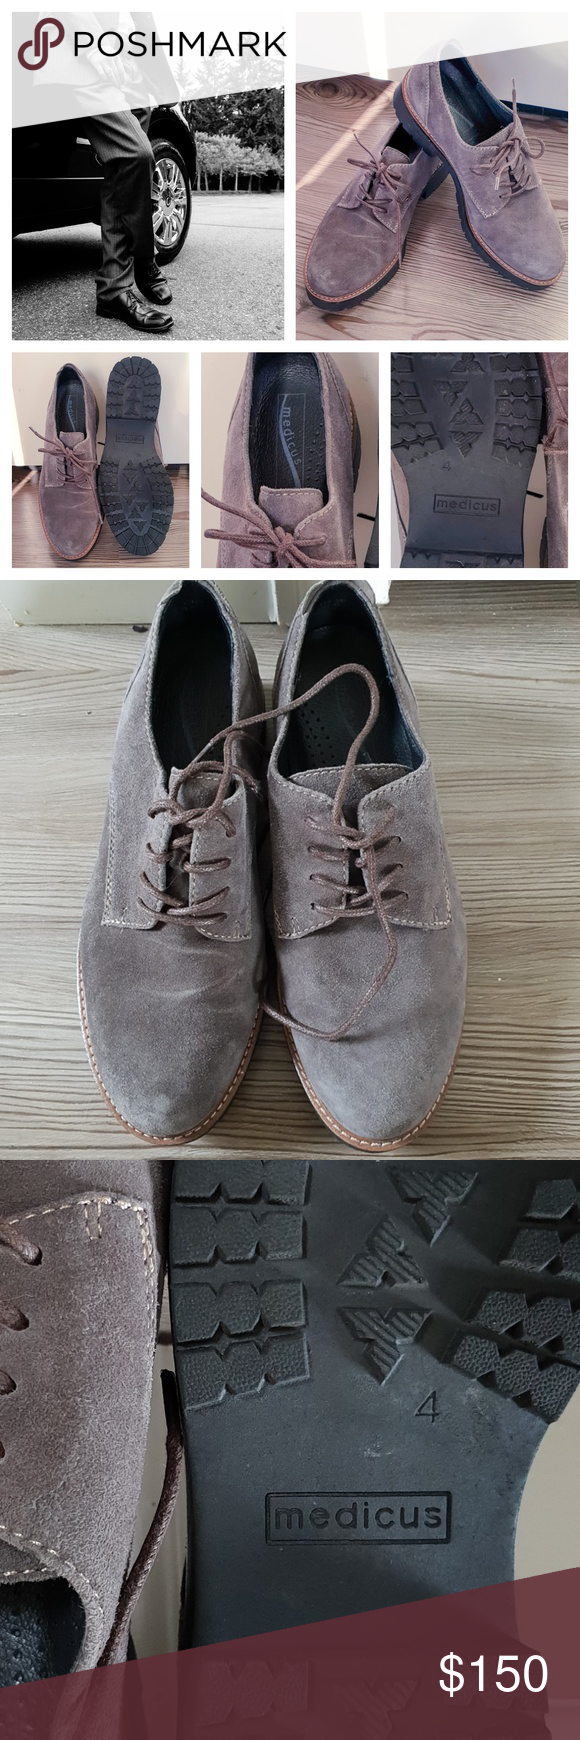 Medicus Oxford Suede Leather Shoes